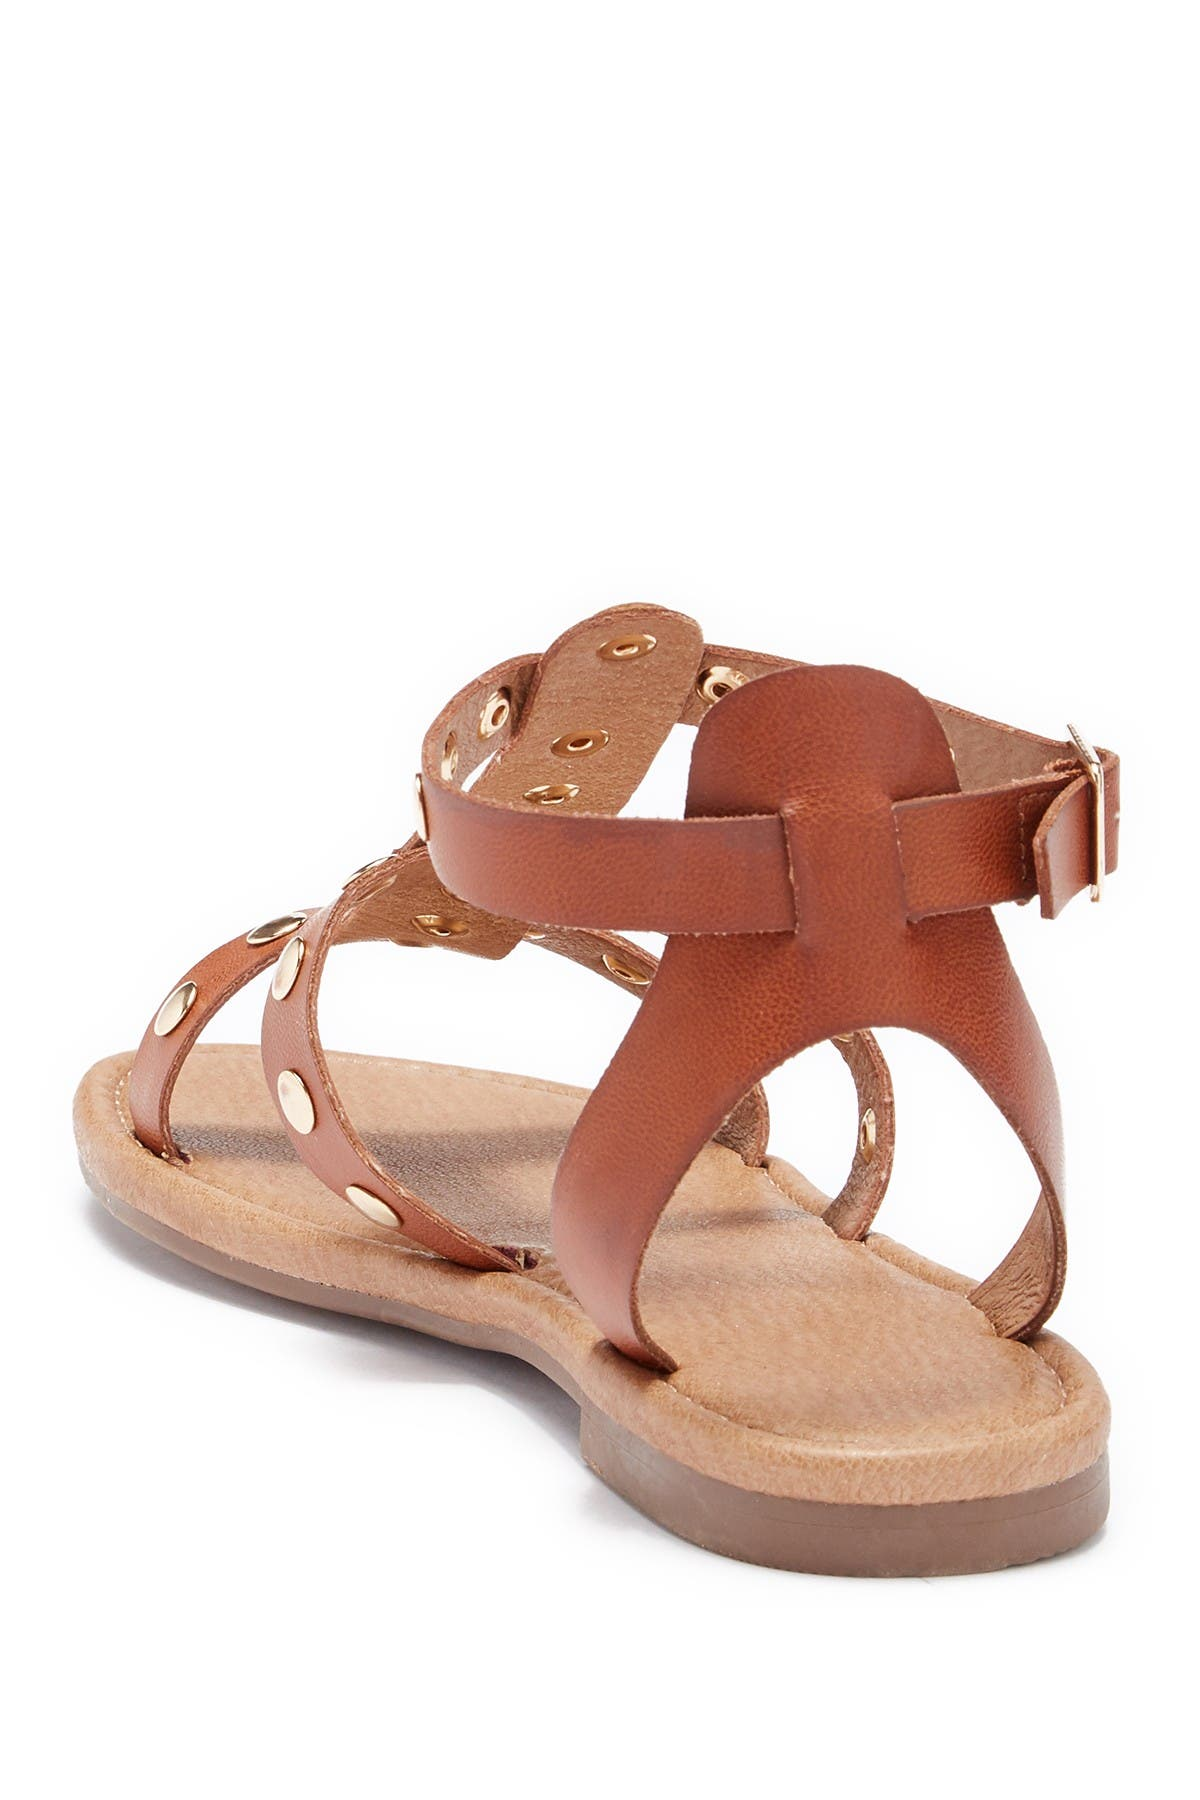 Image of Abound Dionn Studded Sandal